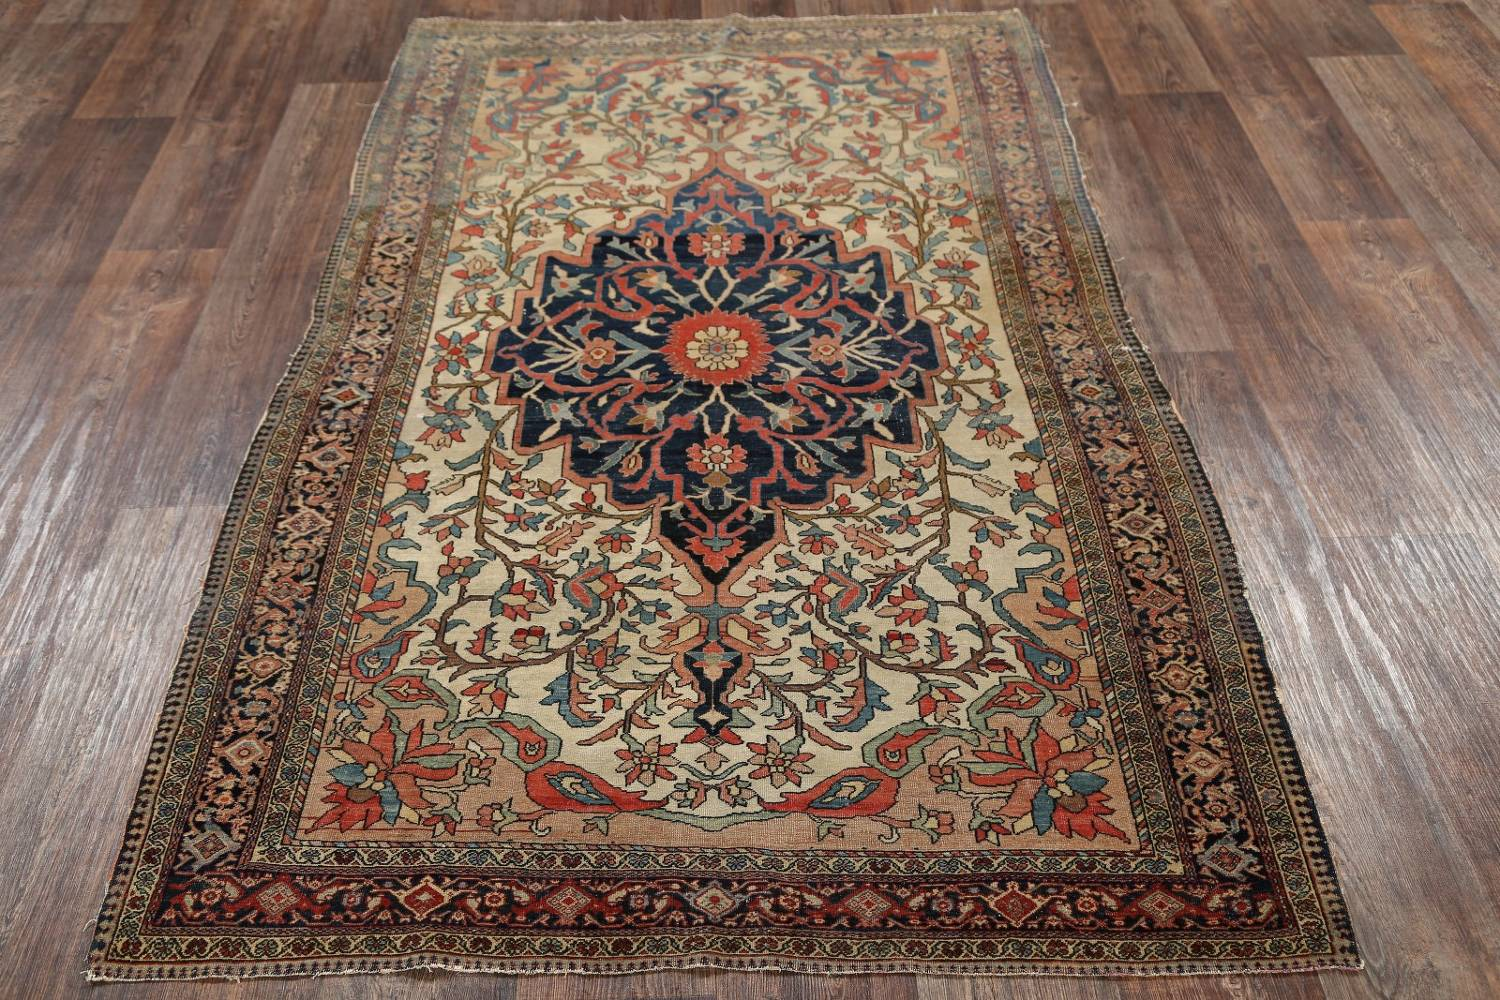 Pre-1900 Antique Floral Sarouk Farahan Persian Hand-Knotted 4'x7' Wool Area Rug image 13